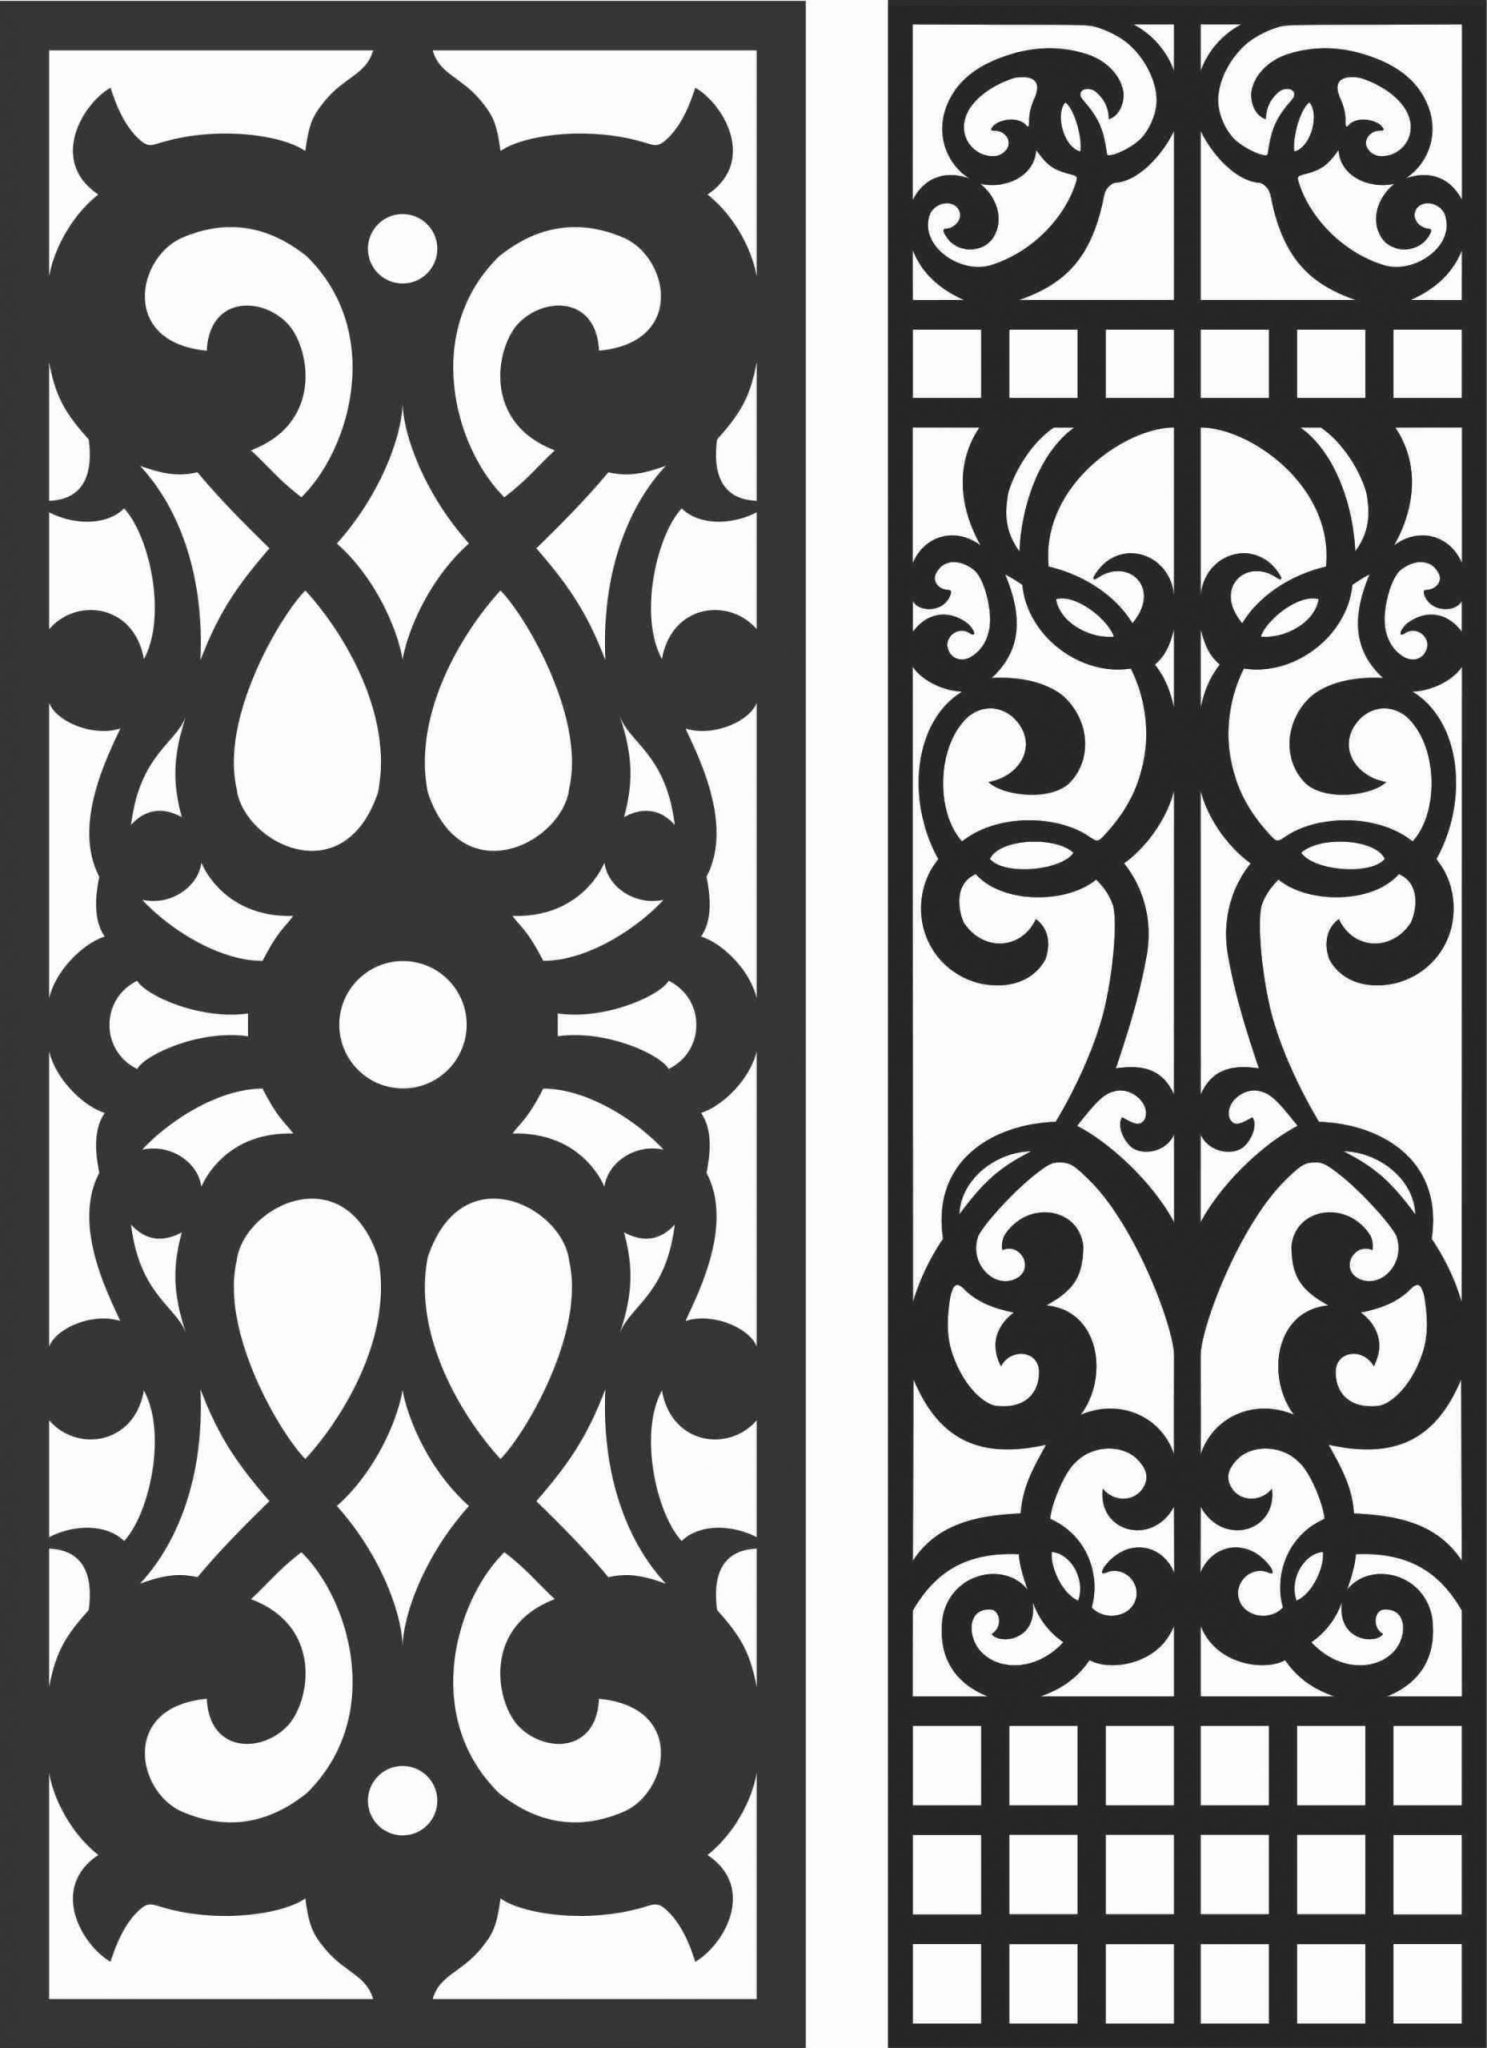 Decorative Screen Patterns For Laser Cutting 59 Free DXF File